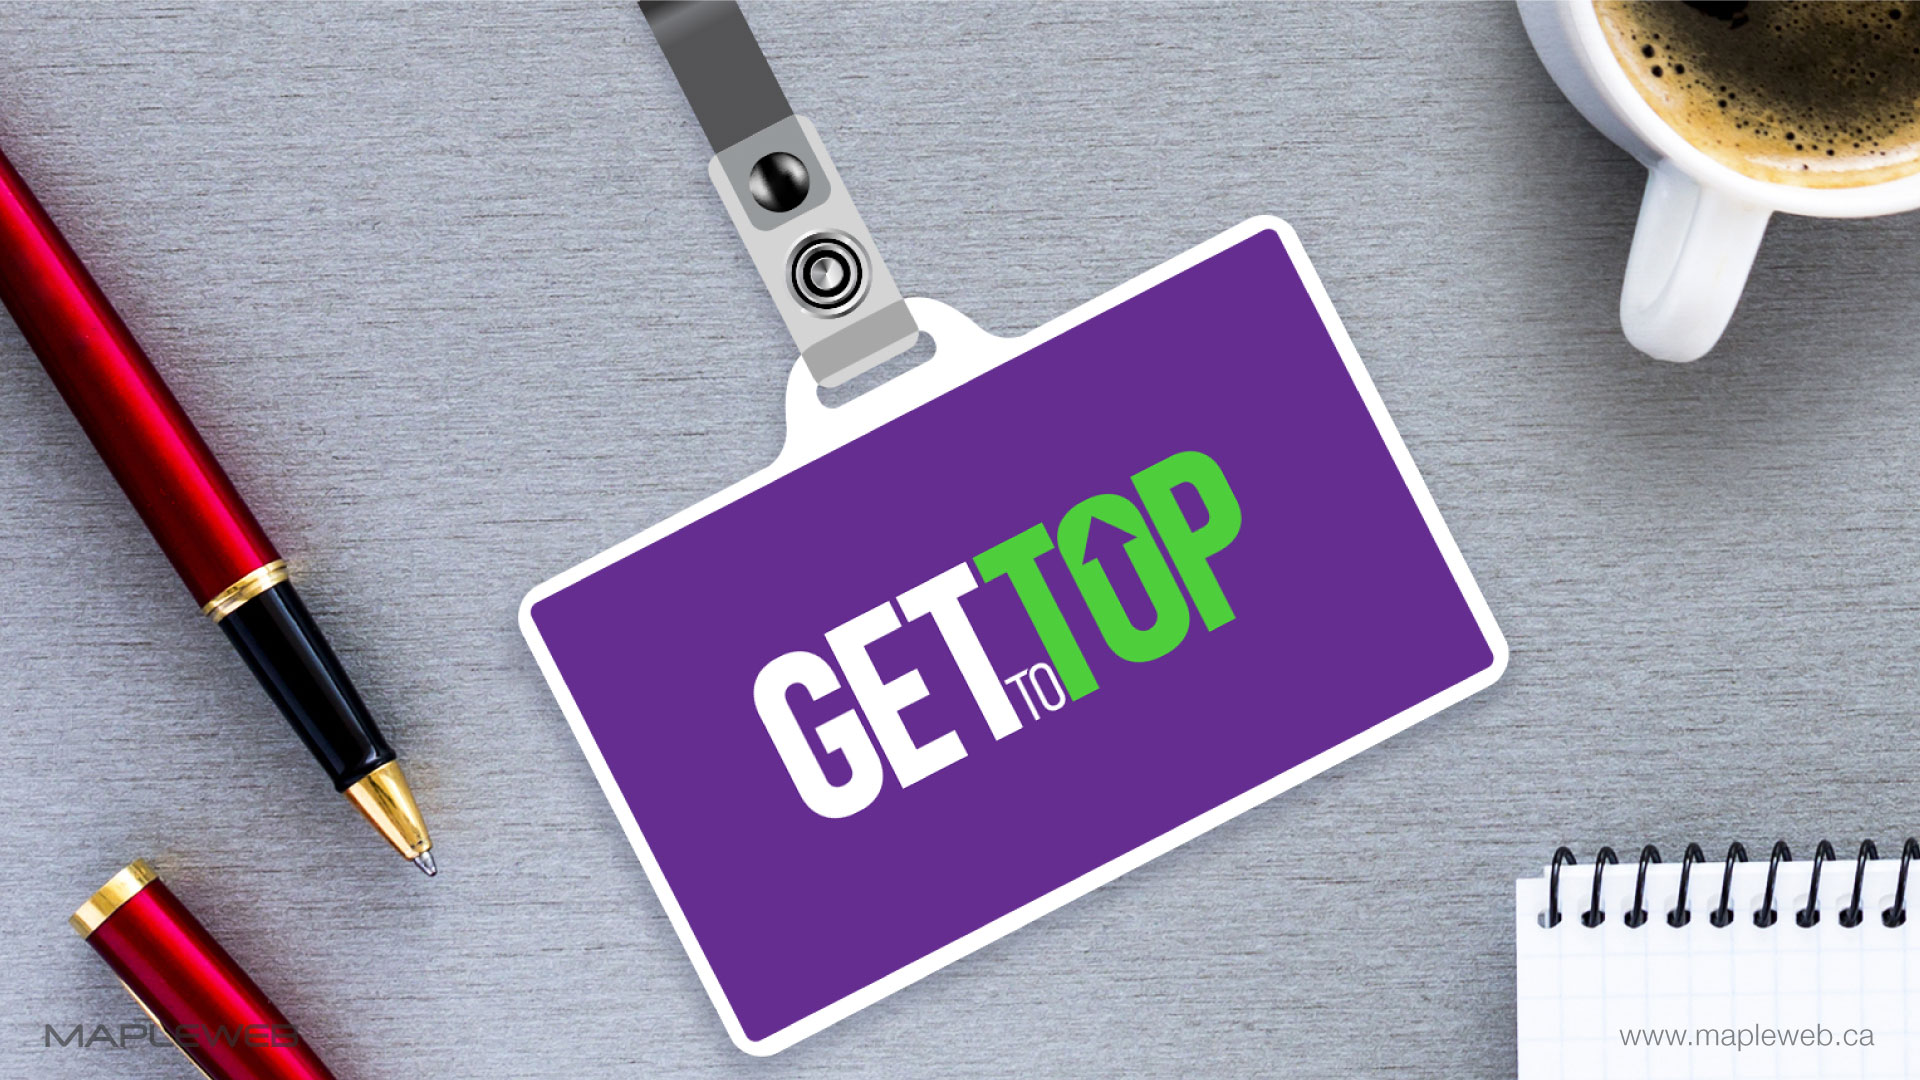 gettotop-brand-logo-design-by-mapleweb-vancouver-canada-card-mock